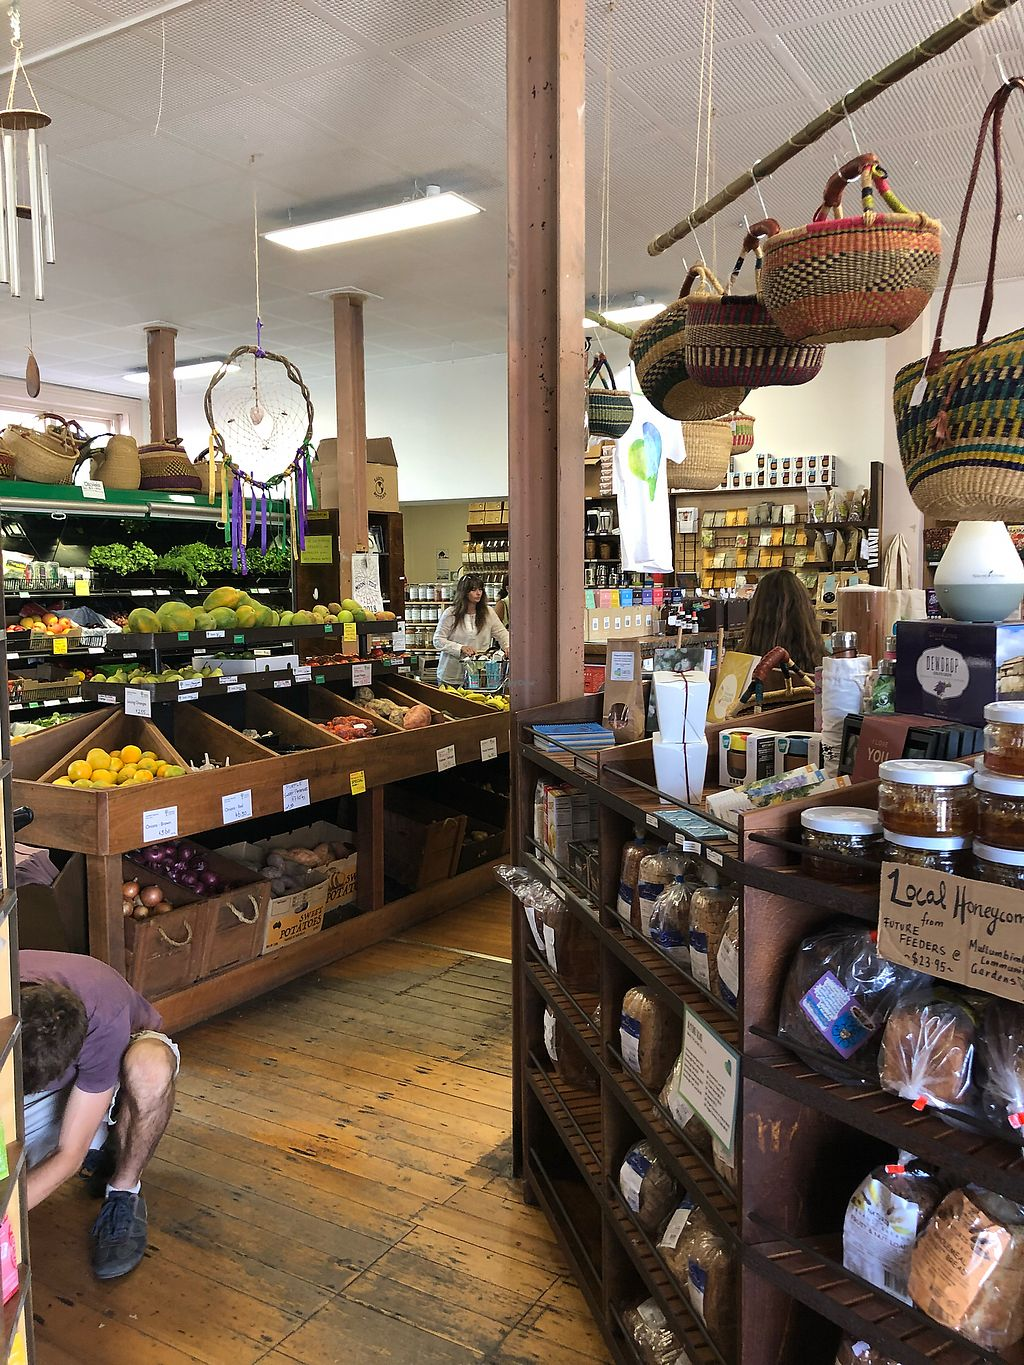 """Photo of Santos Organic and Natural Food  by <a href=""""/members/profile/ben_eitel"""">ben_eitel</a> <br/>Great selection of produce & home essentials <br/> January 17, 2018  - <a href='/contact/abuse/image/17540/347532'>Report</a>"""